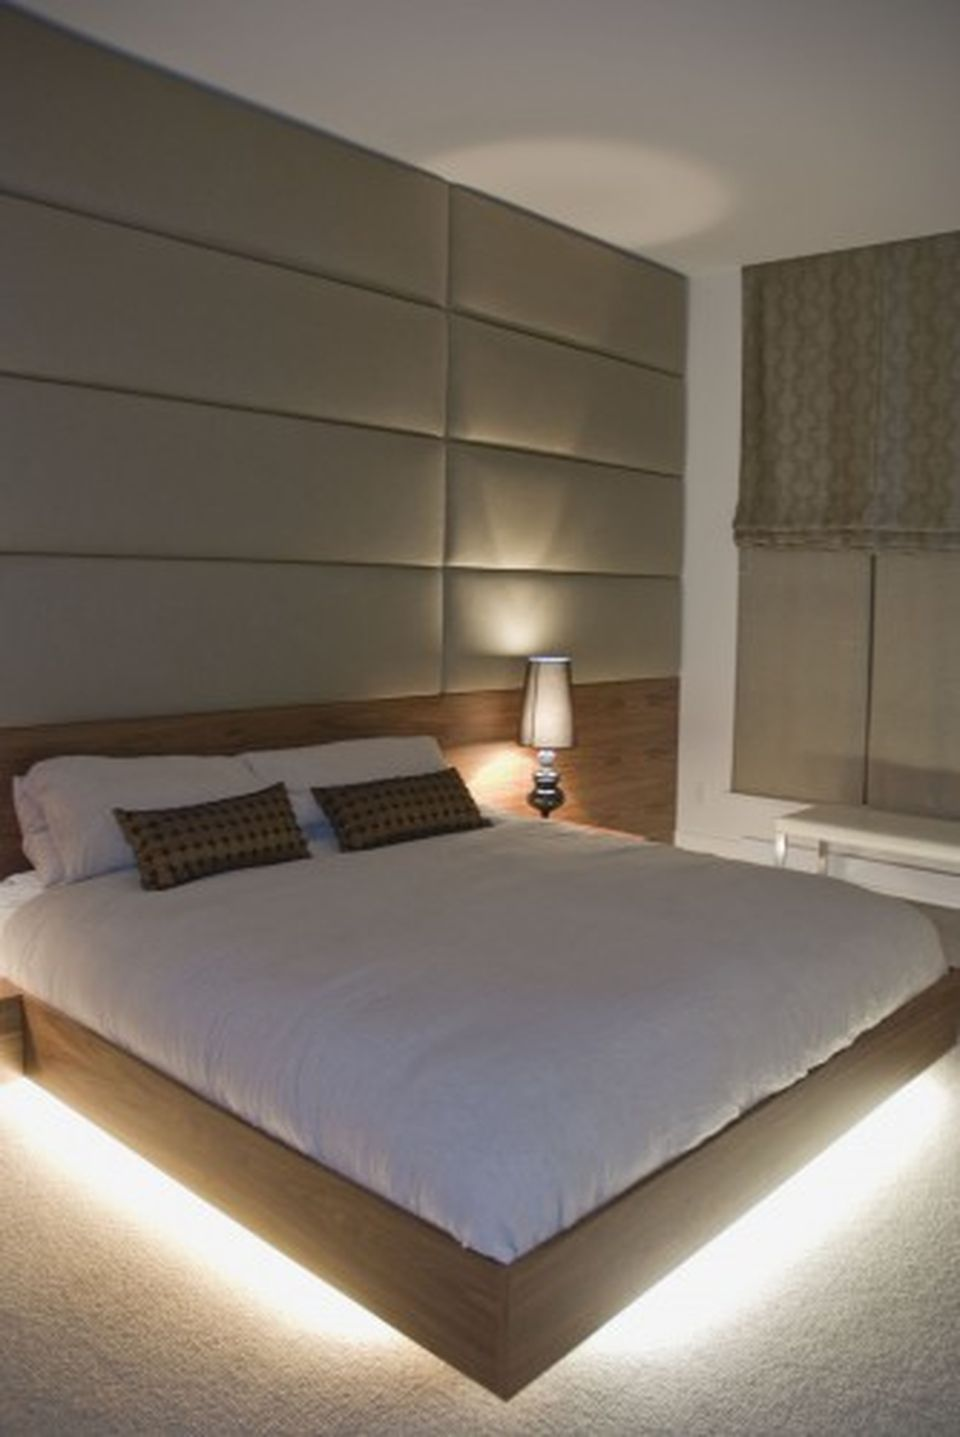 Modern Floating Bed Design With Under Light Ideas 18